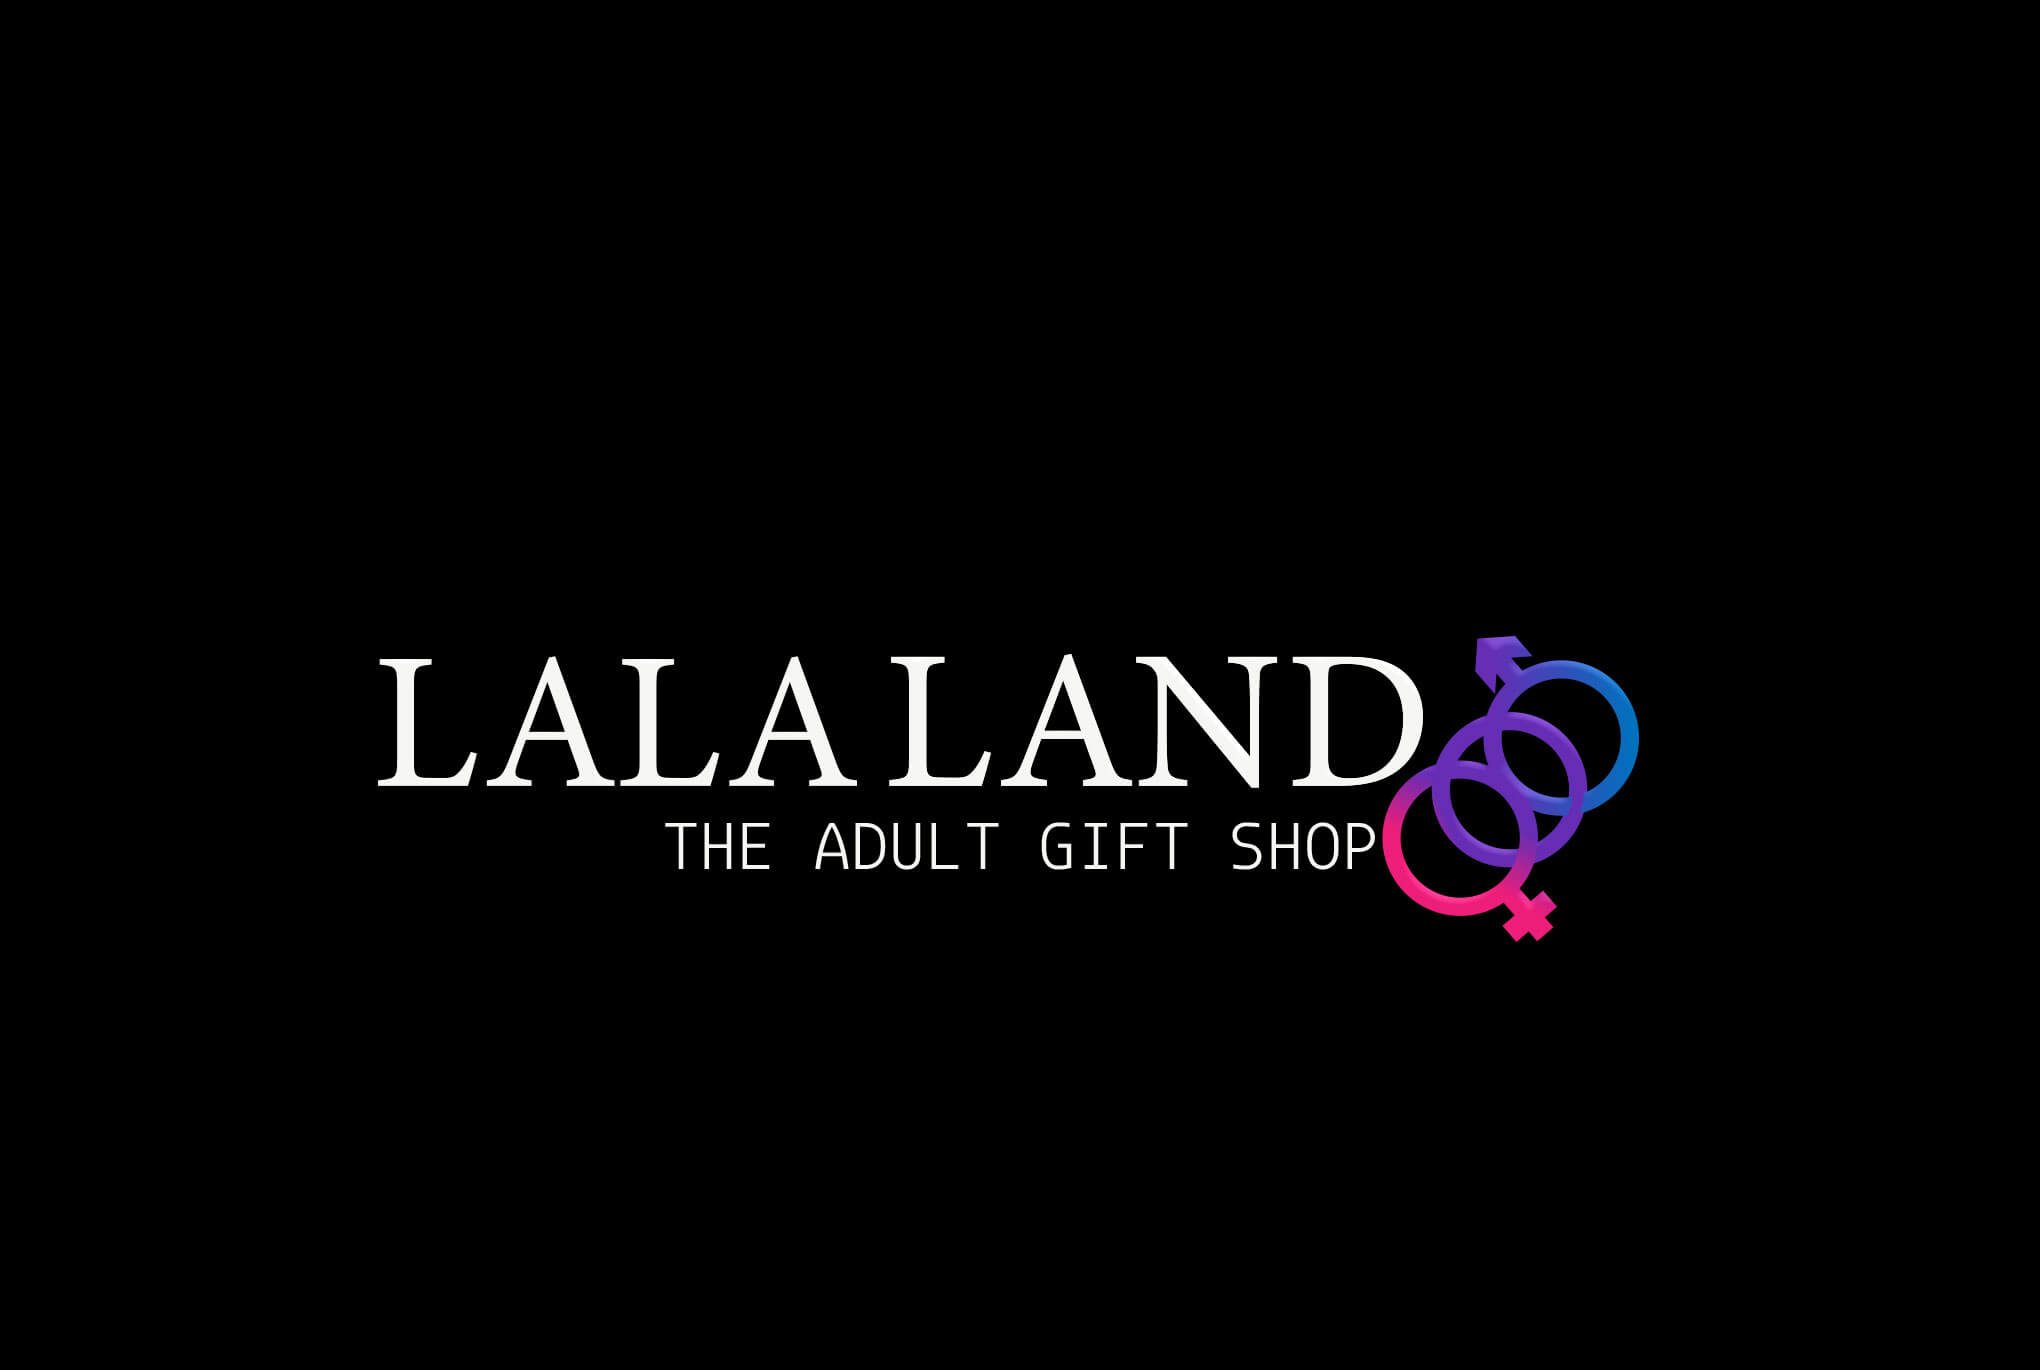 la la land, male sex toys, sex shop near me, adult store near me, lala land brunswick